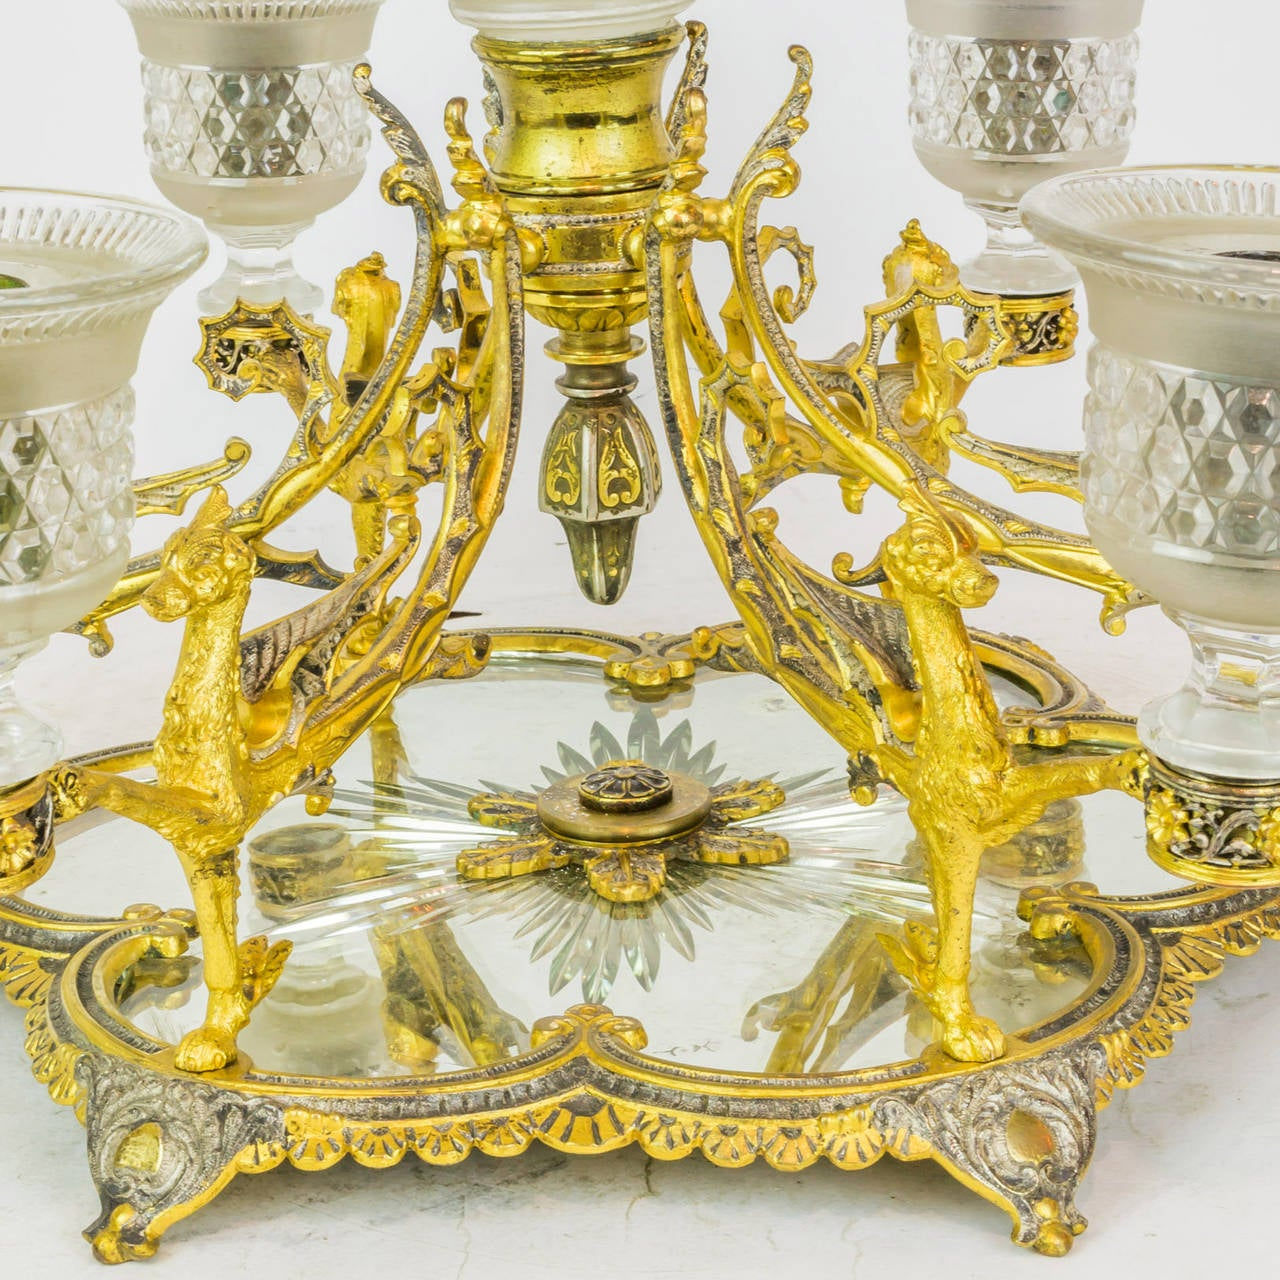 Crystal and bronze mirrored centerpiece with attached